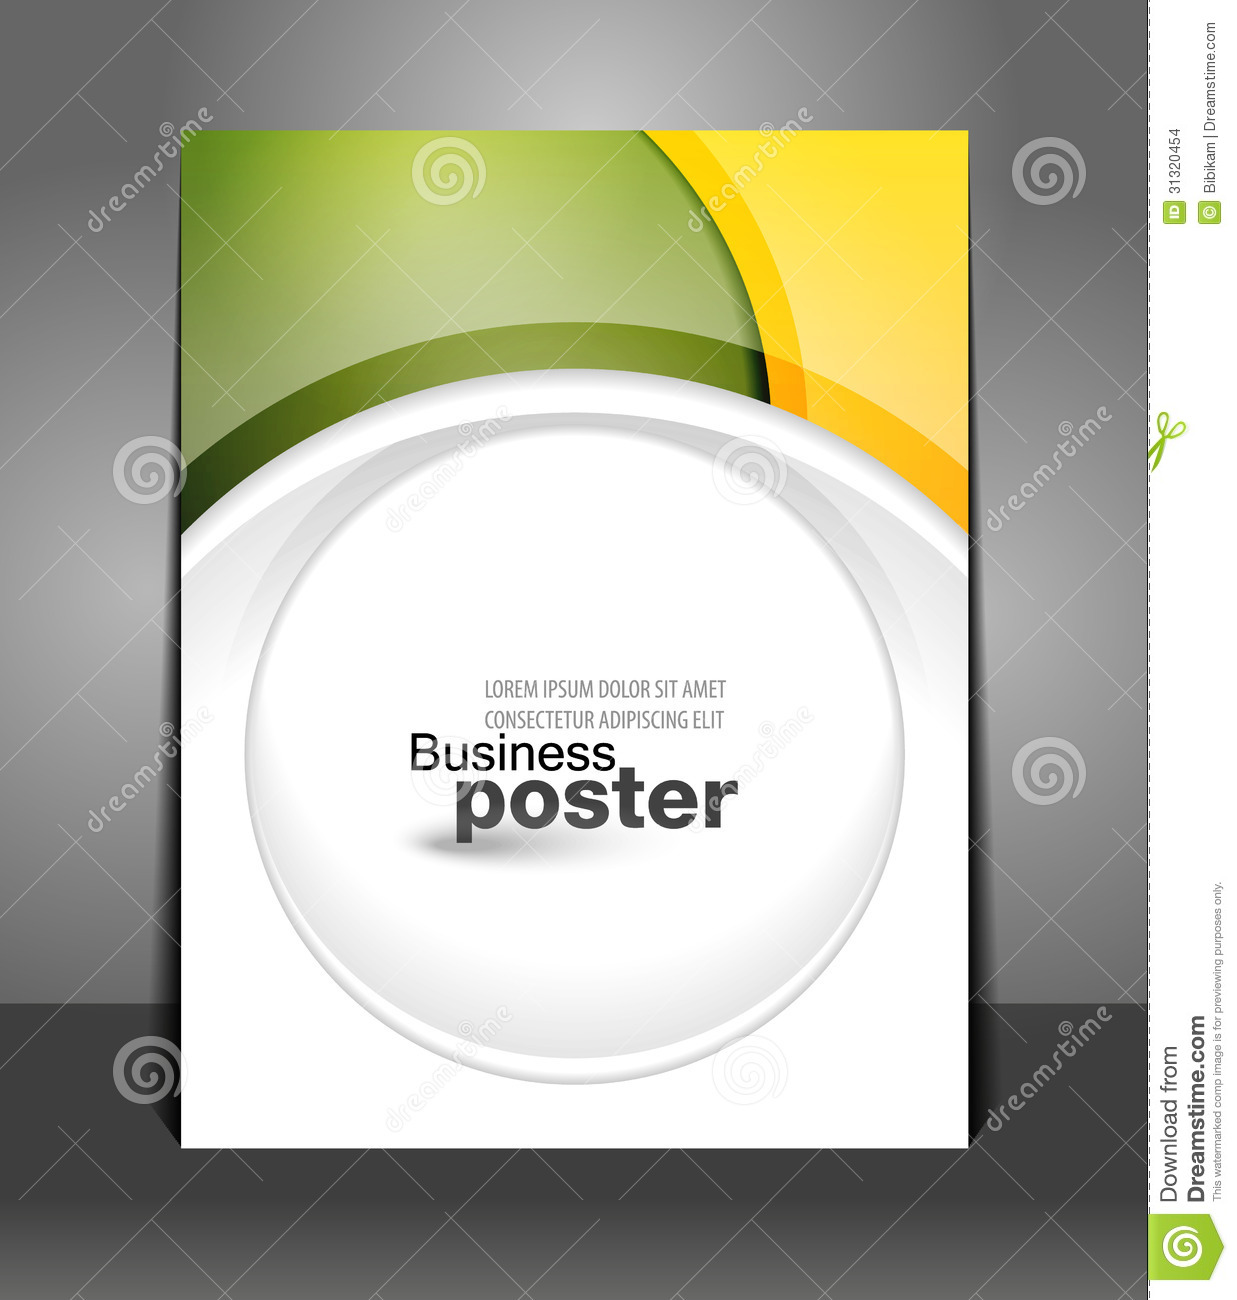 Poster design layout templates -  Templates Background Business Design Flyer Layout Poster Presentation Stylish Download